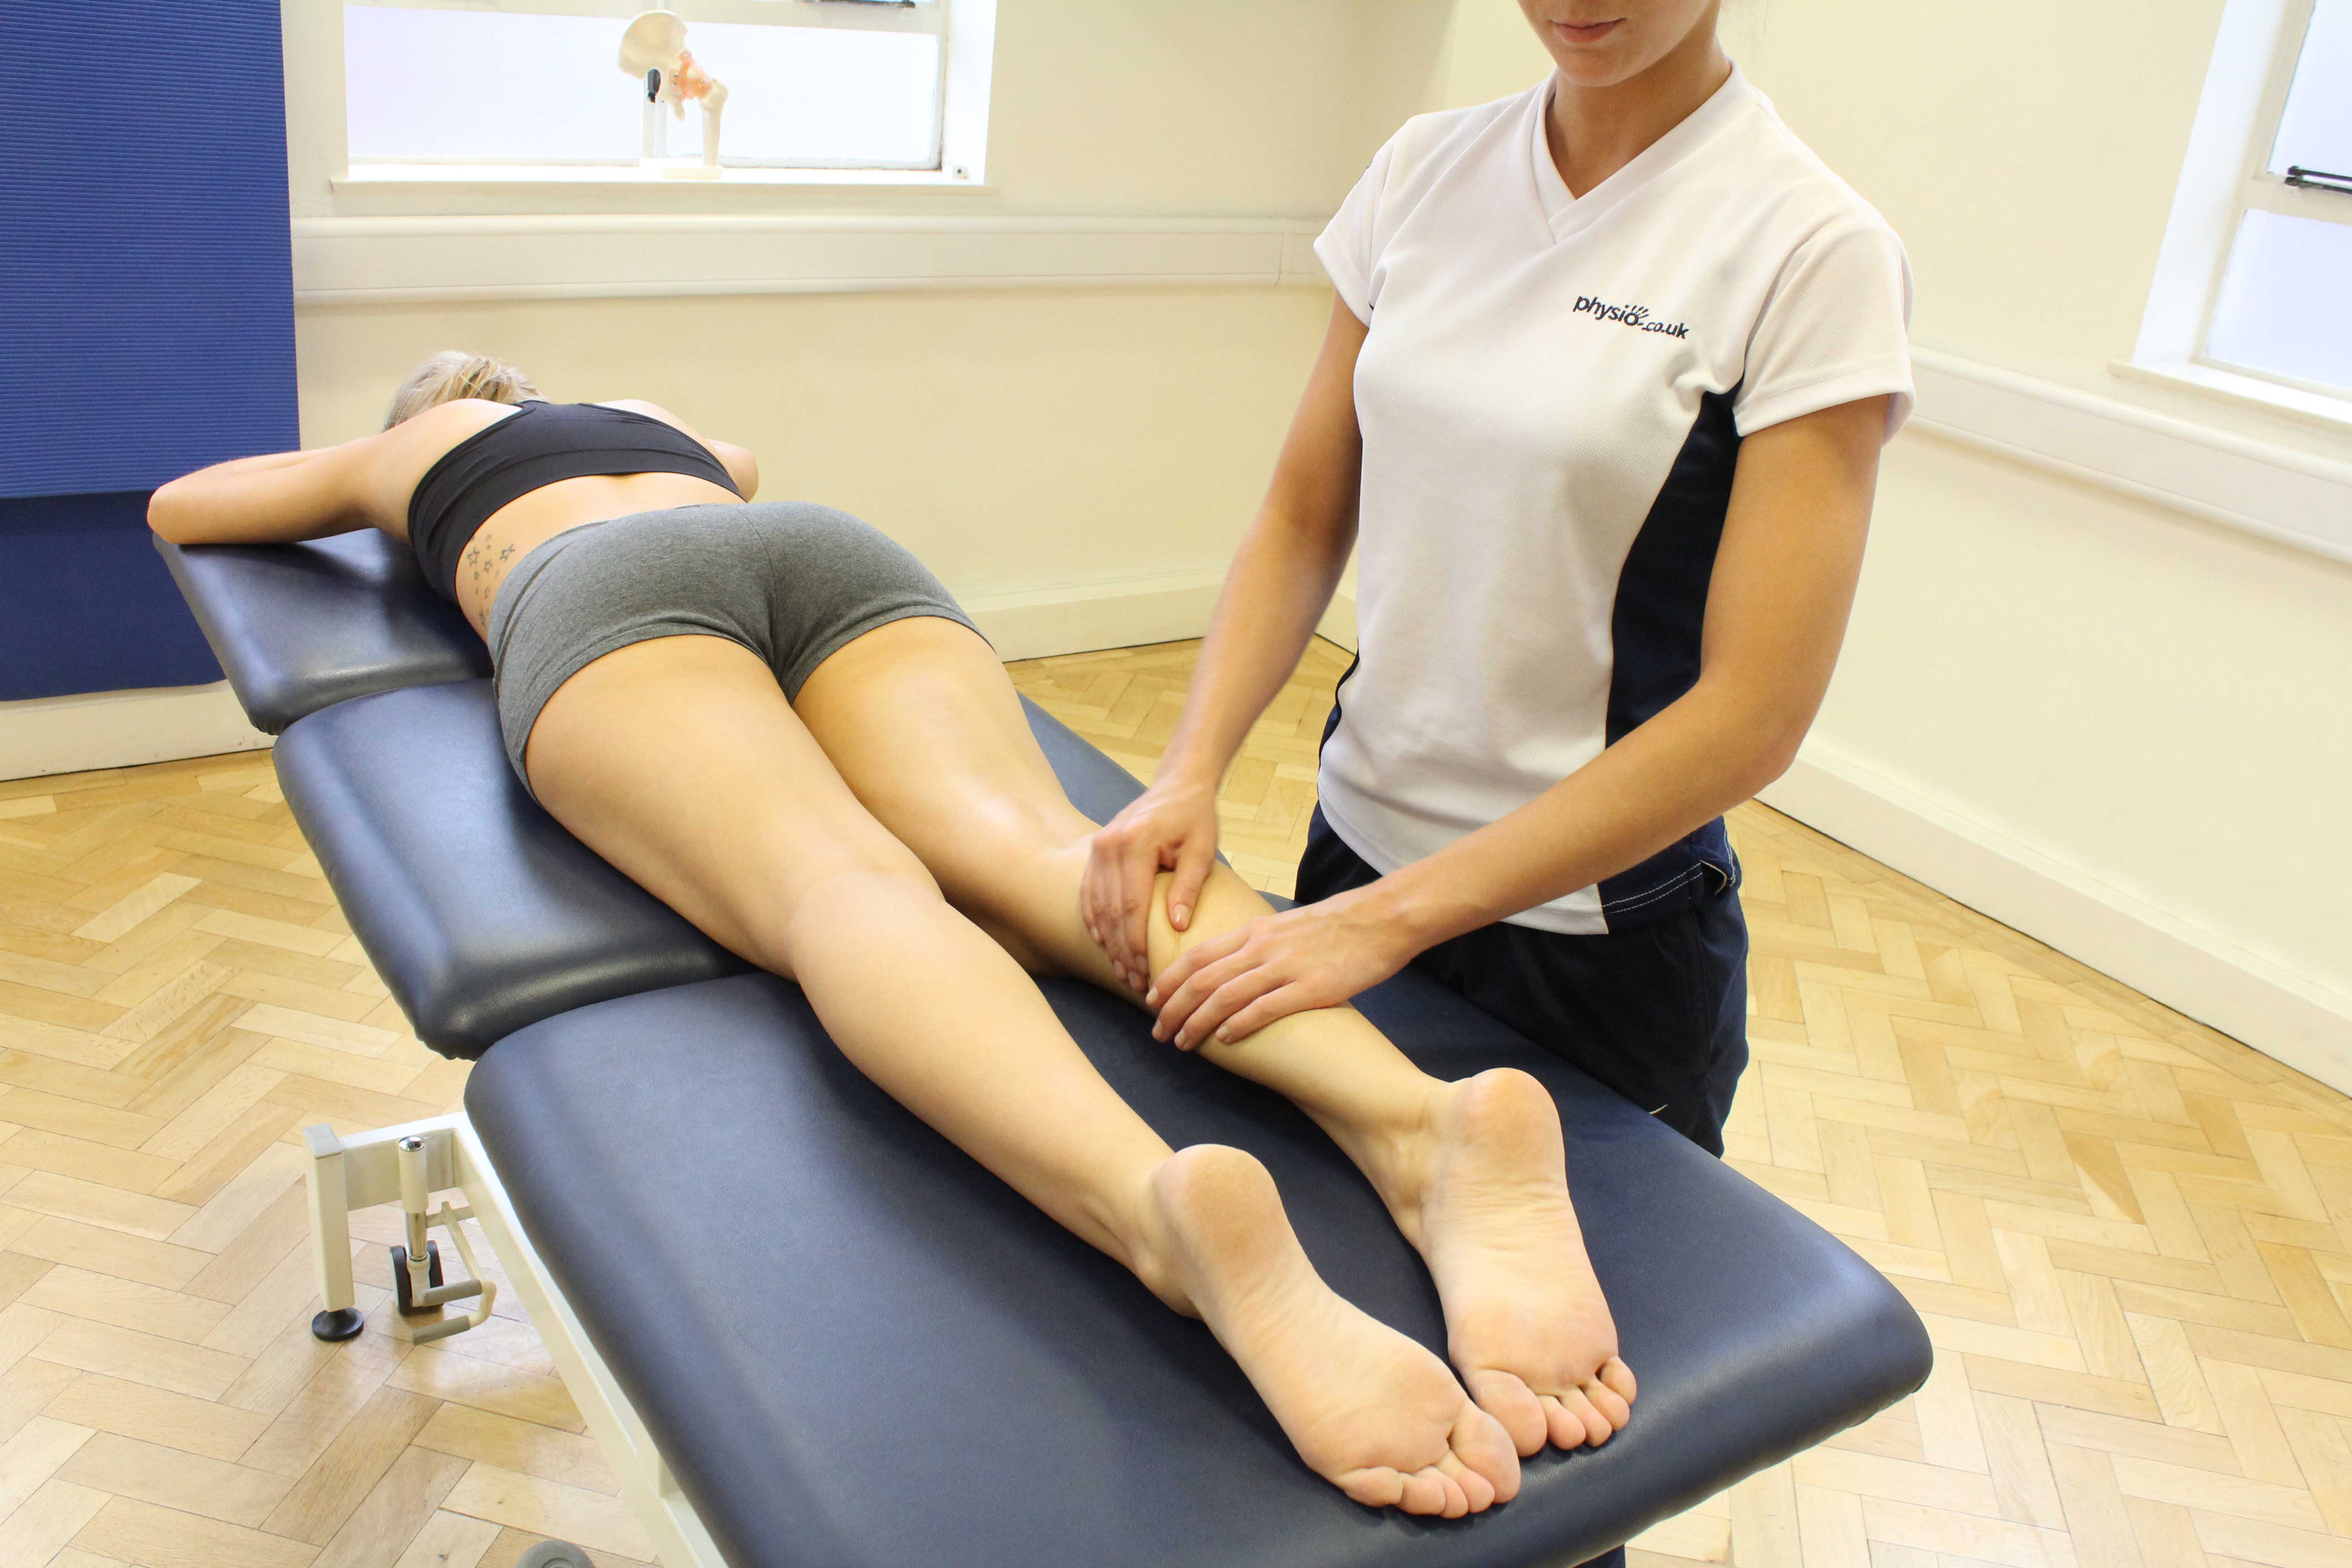 Rolling massage technique applied to gastrocnemius and soleus muscles